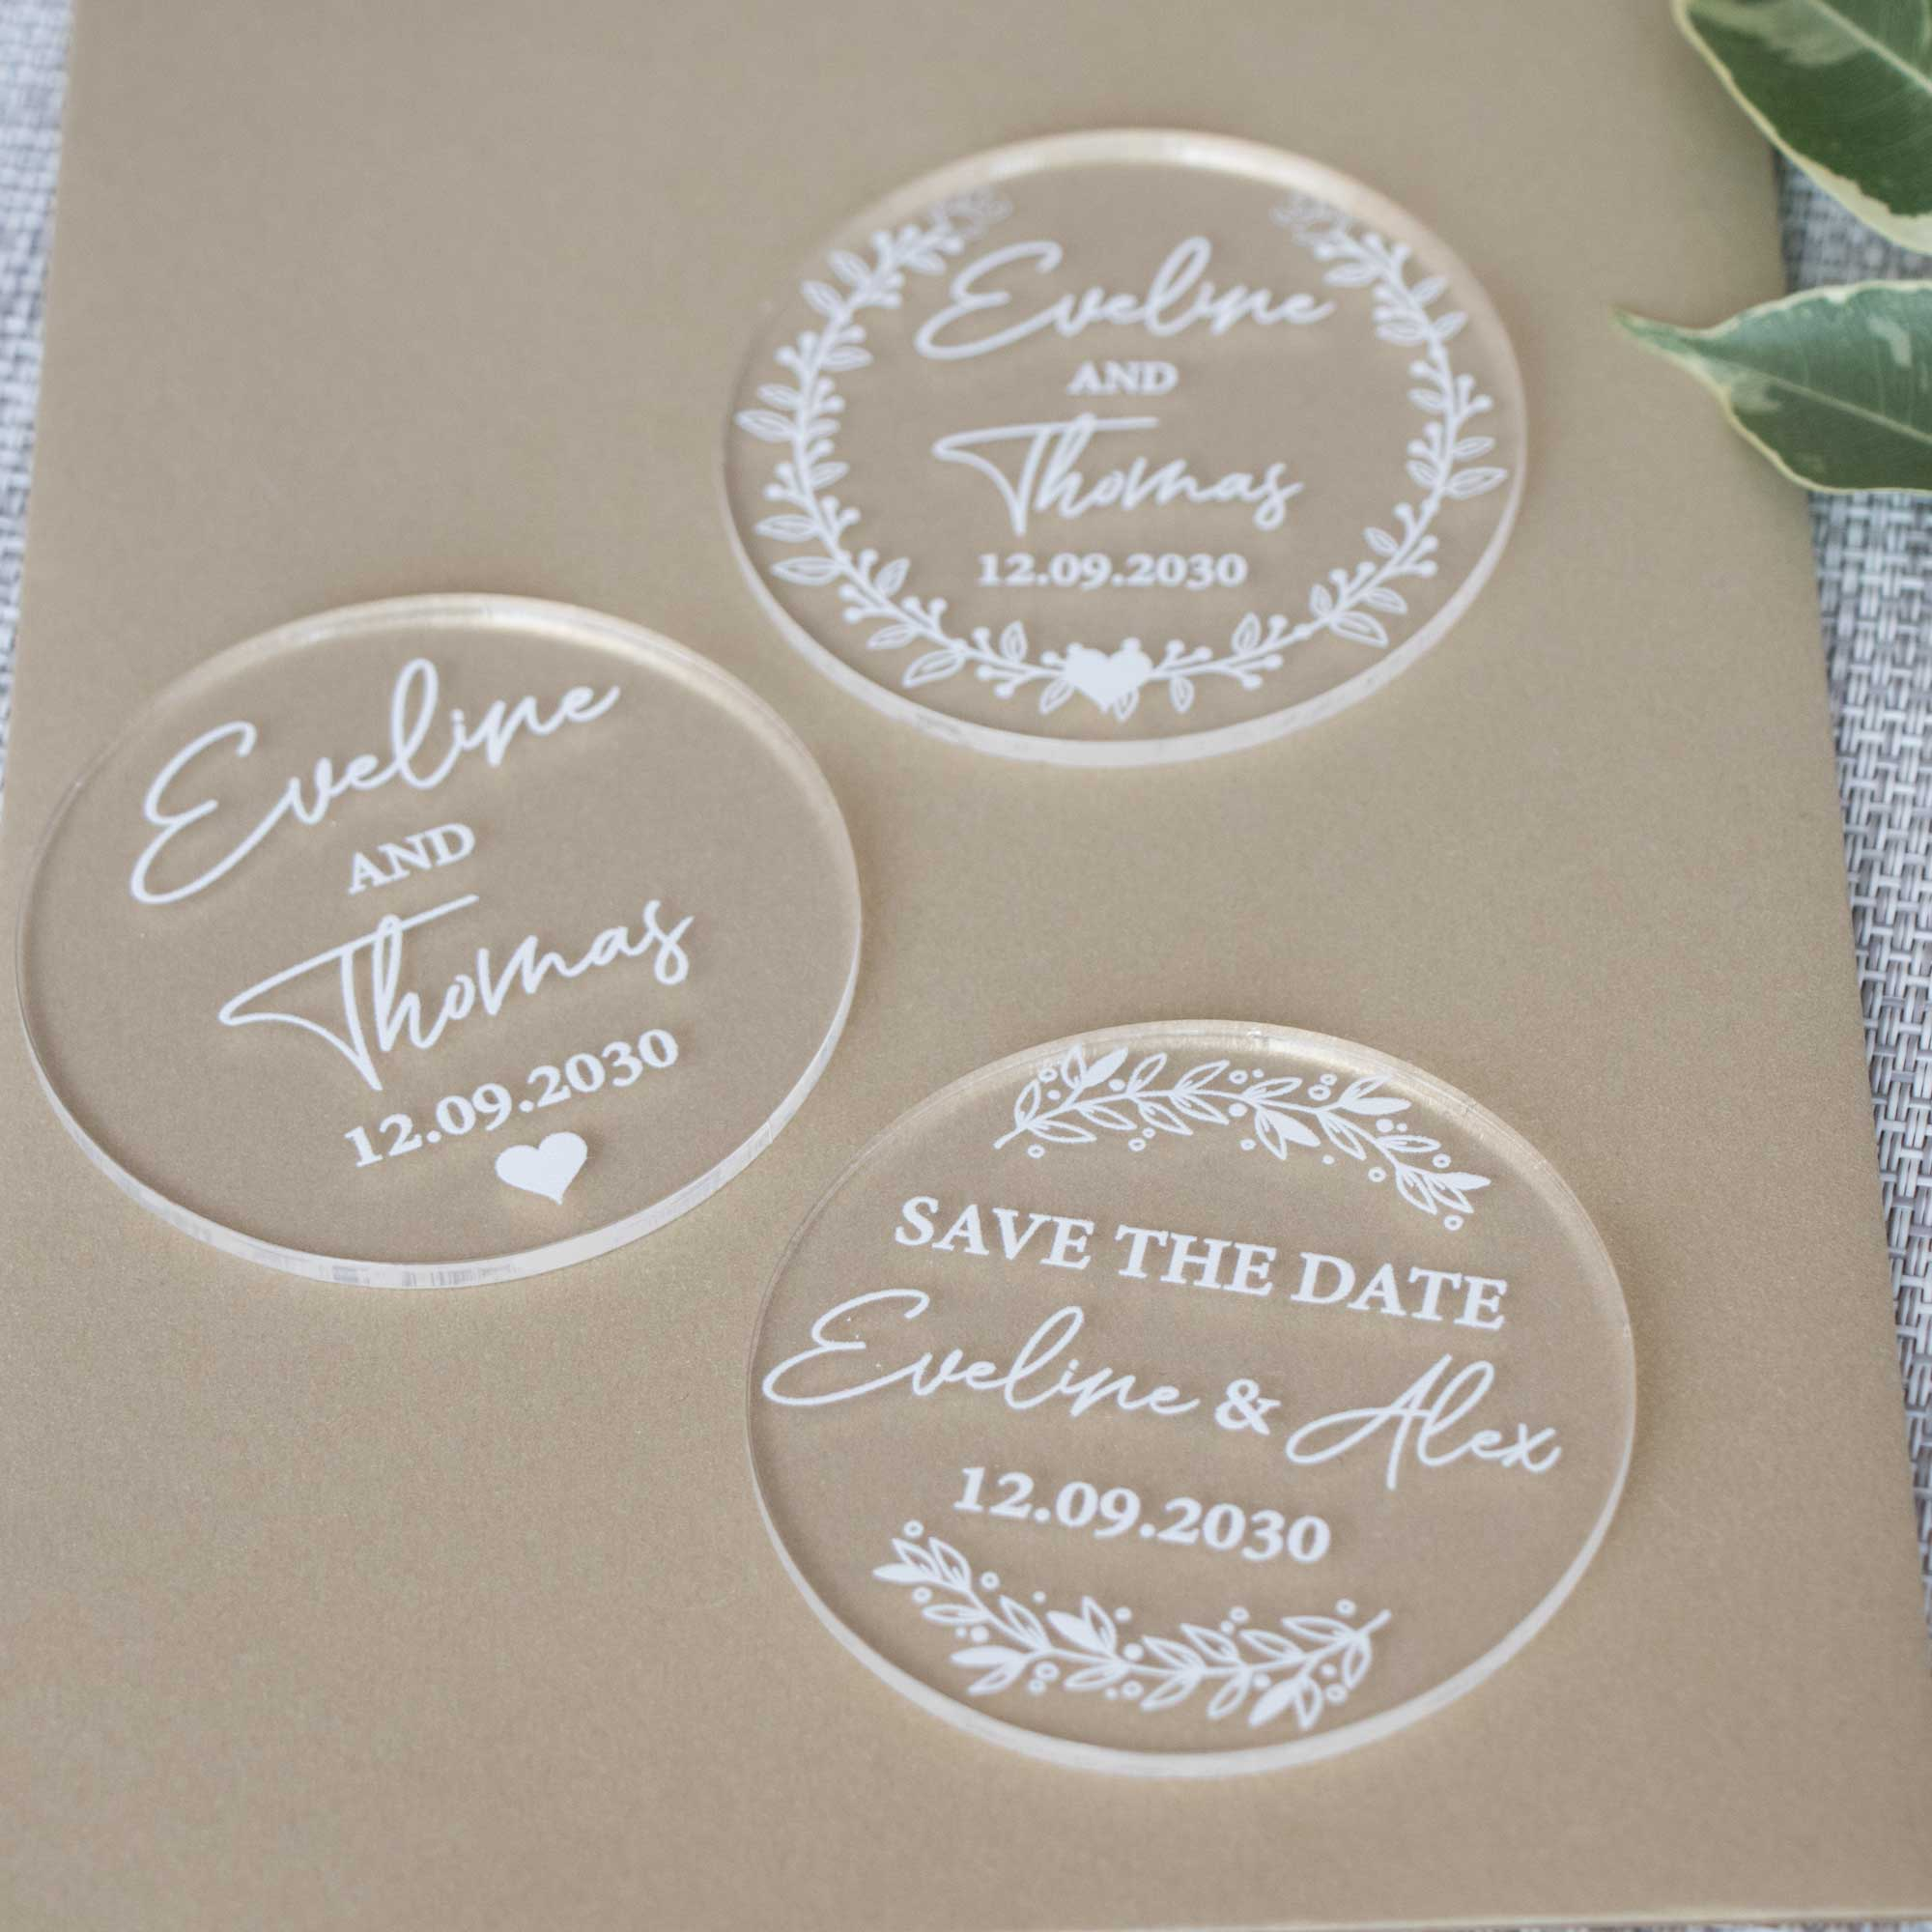 Acrylic Save the Date Cards, Personalized Magnet, Modern Save the Date Magnet, Save the Date Magnet, Clear Save the Date, Custom Wedding Save the Date